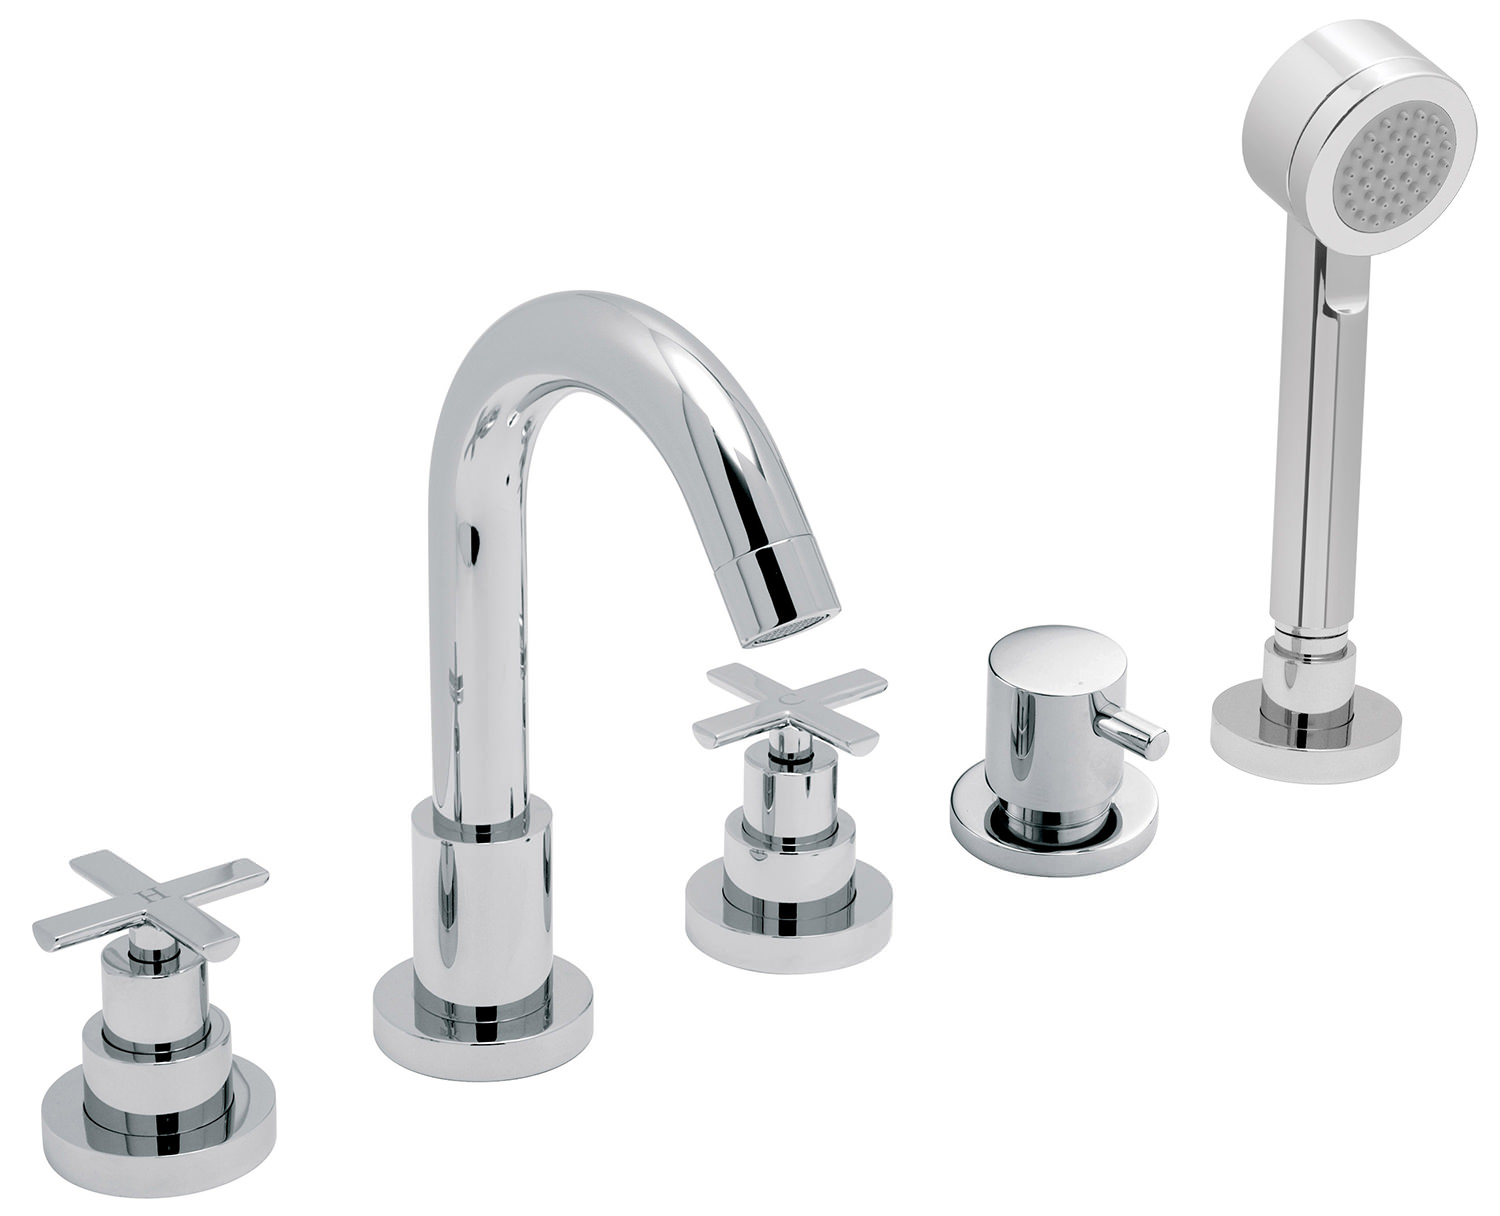 Vado Tonic 5 Hole Deck Mounted Bath Shower Mixer Tap